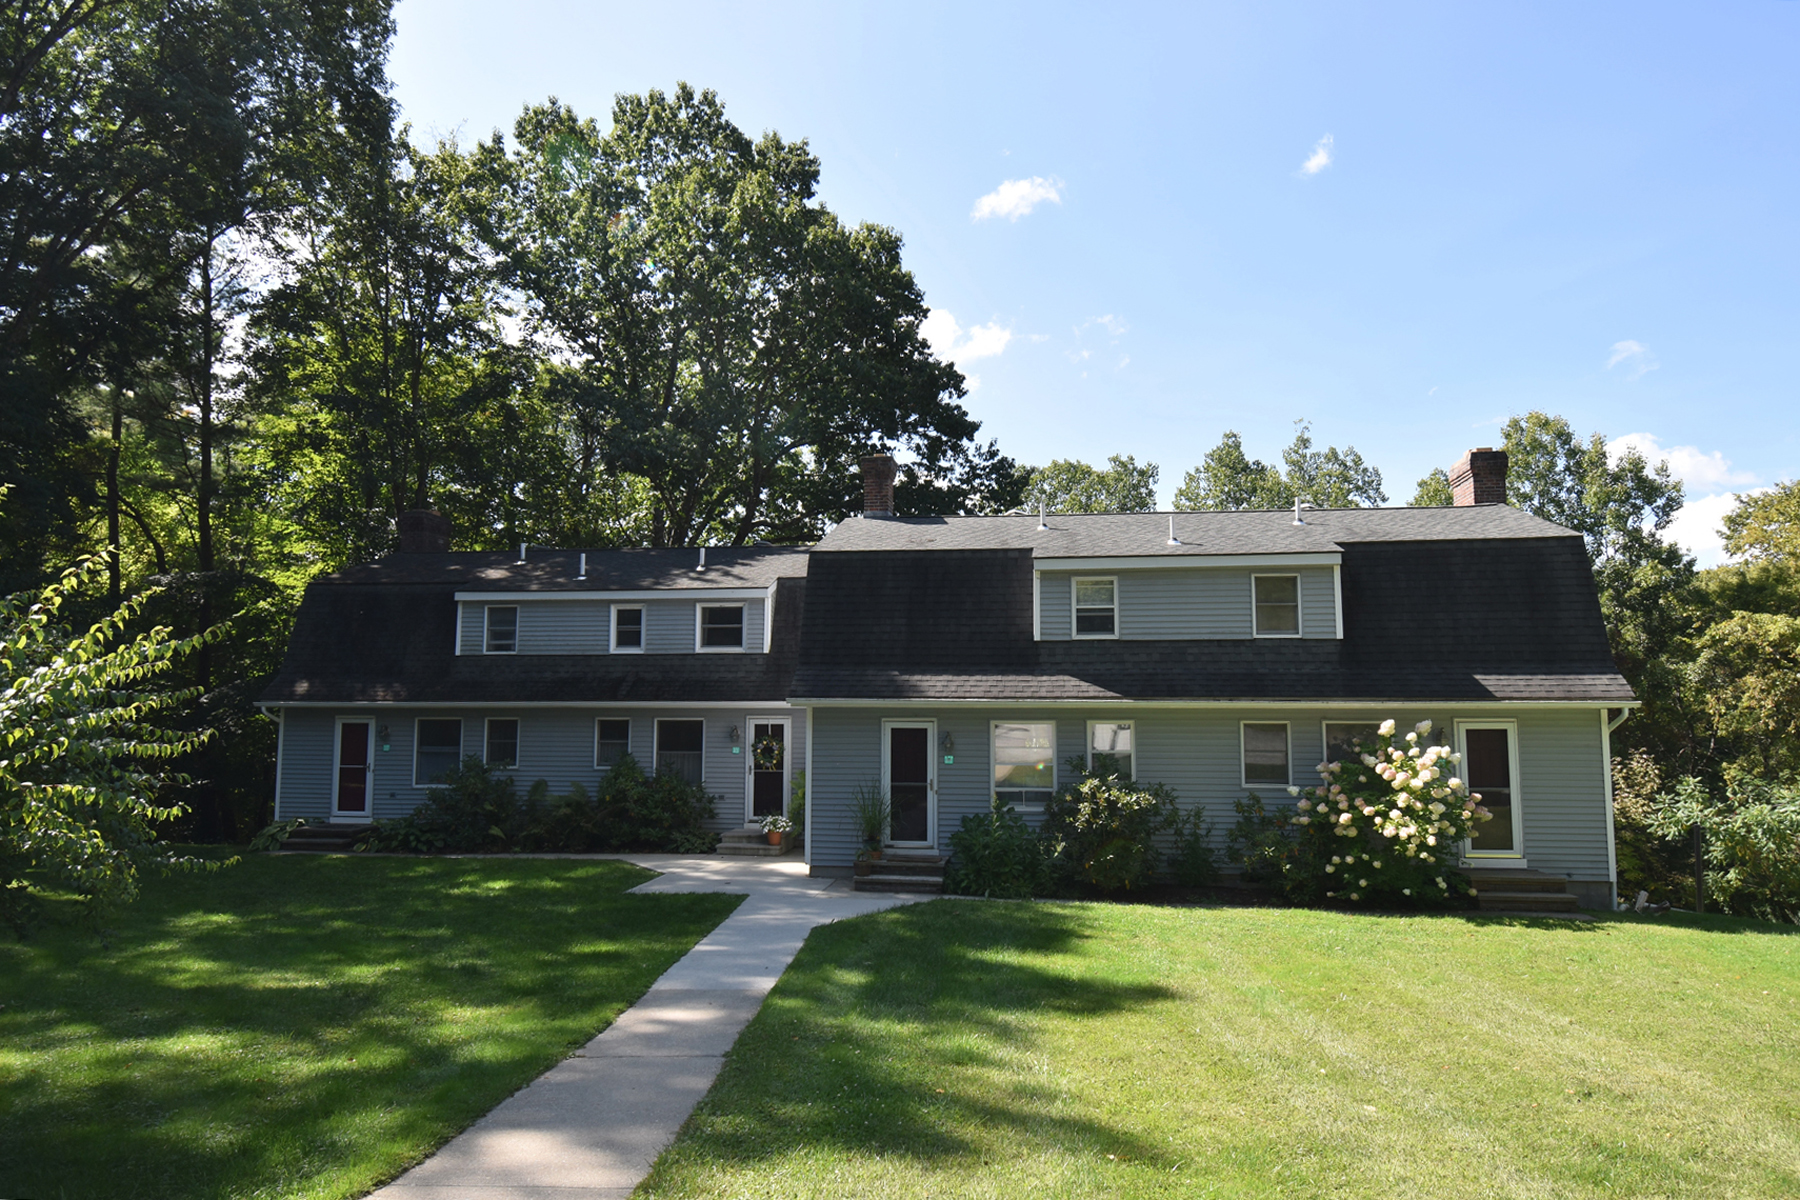 Condominiums for Sale at Feels Like a House 73 Old Colony Way A5 Pittsford, Vermont 05763 United States